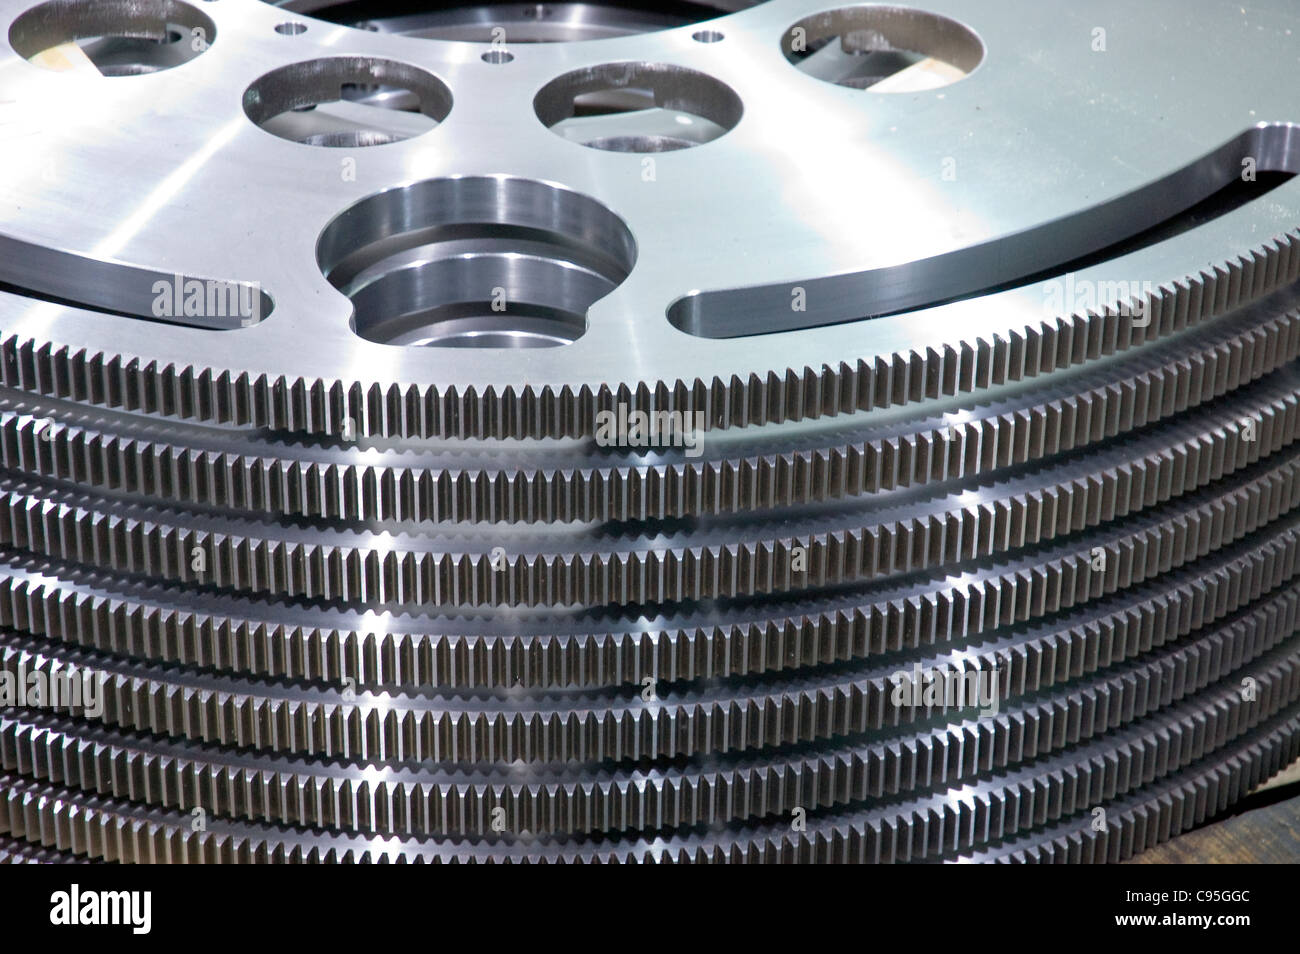 close up stack of steel metal industrial gears - Stock Image